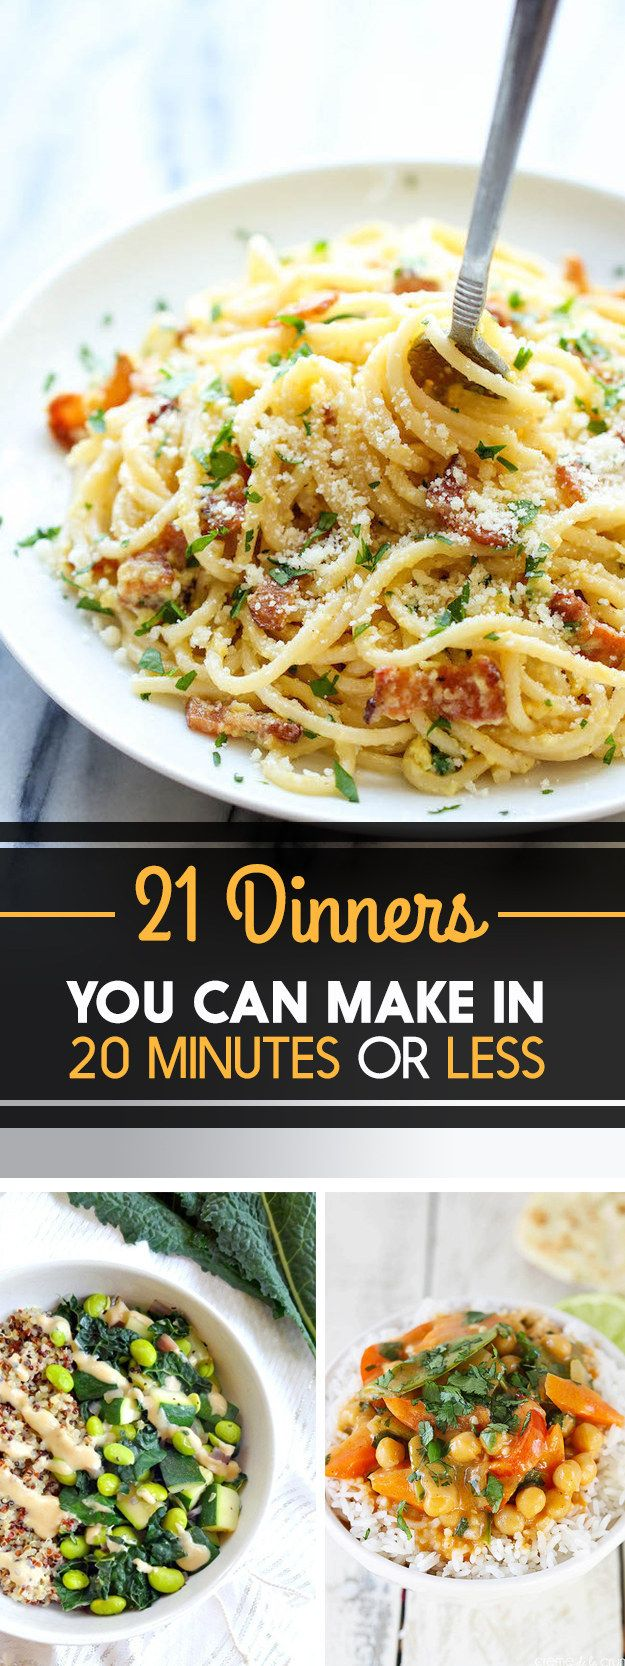 21 Dinners You Only Need 20 Minutes To Make